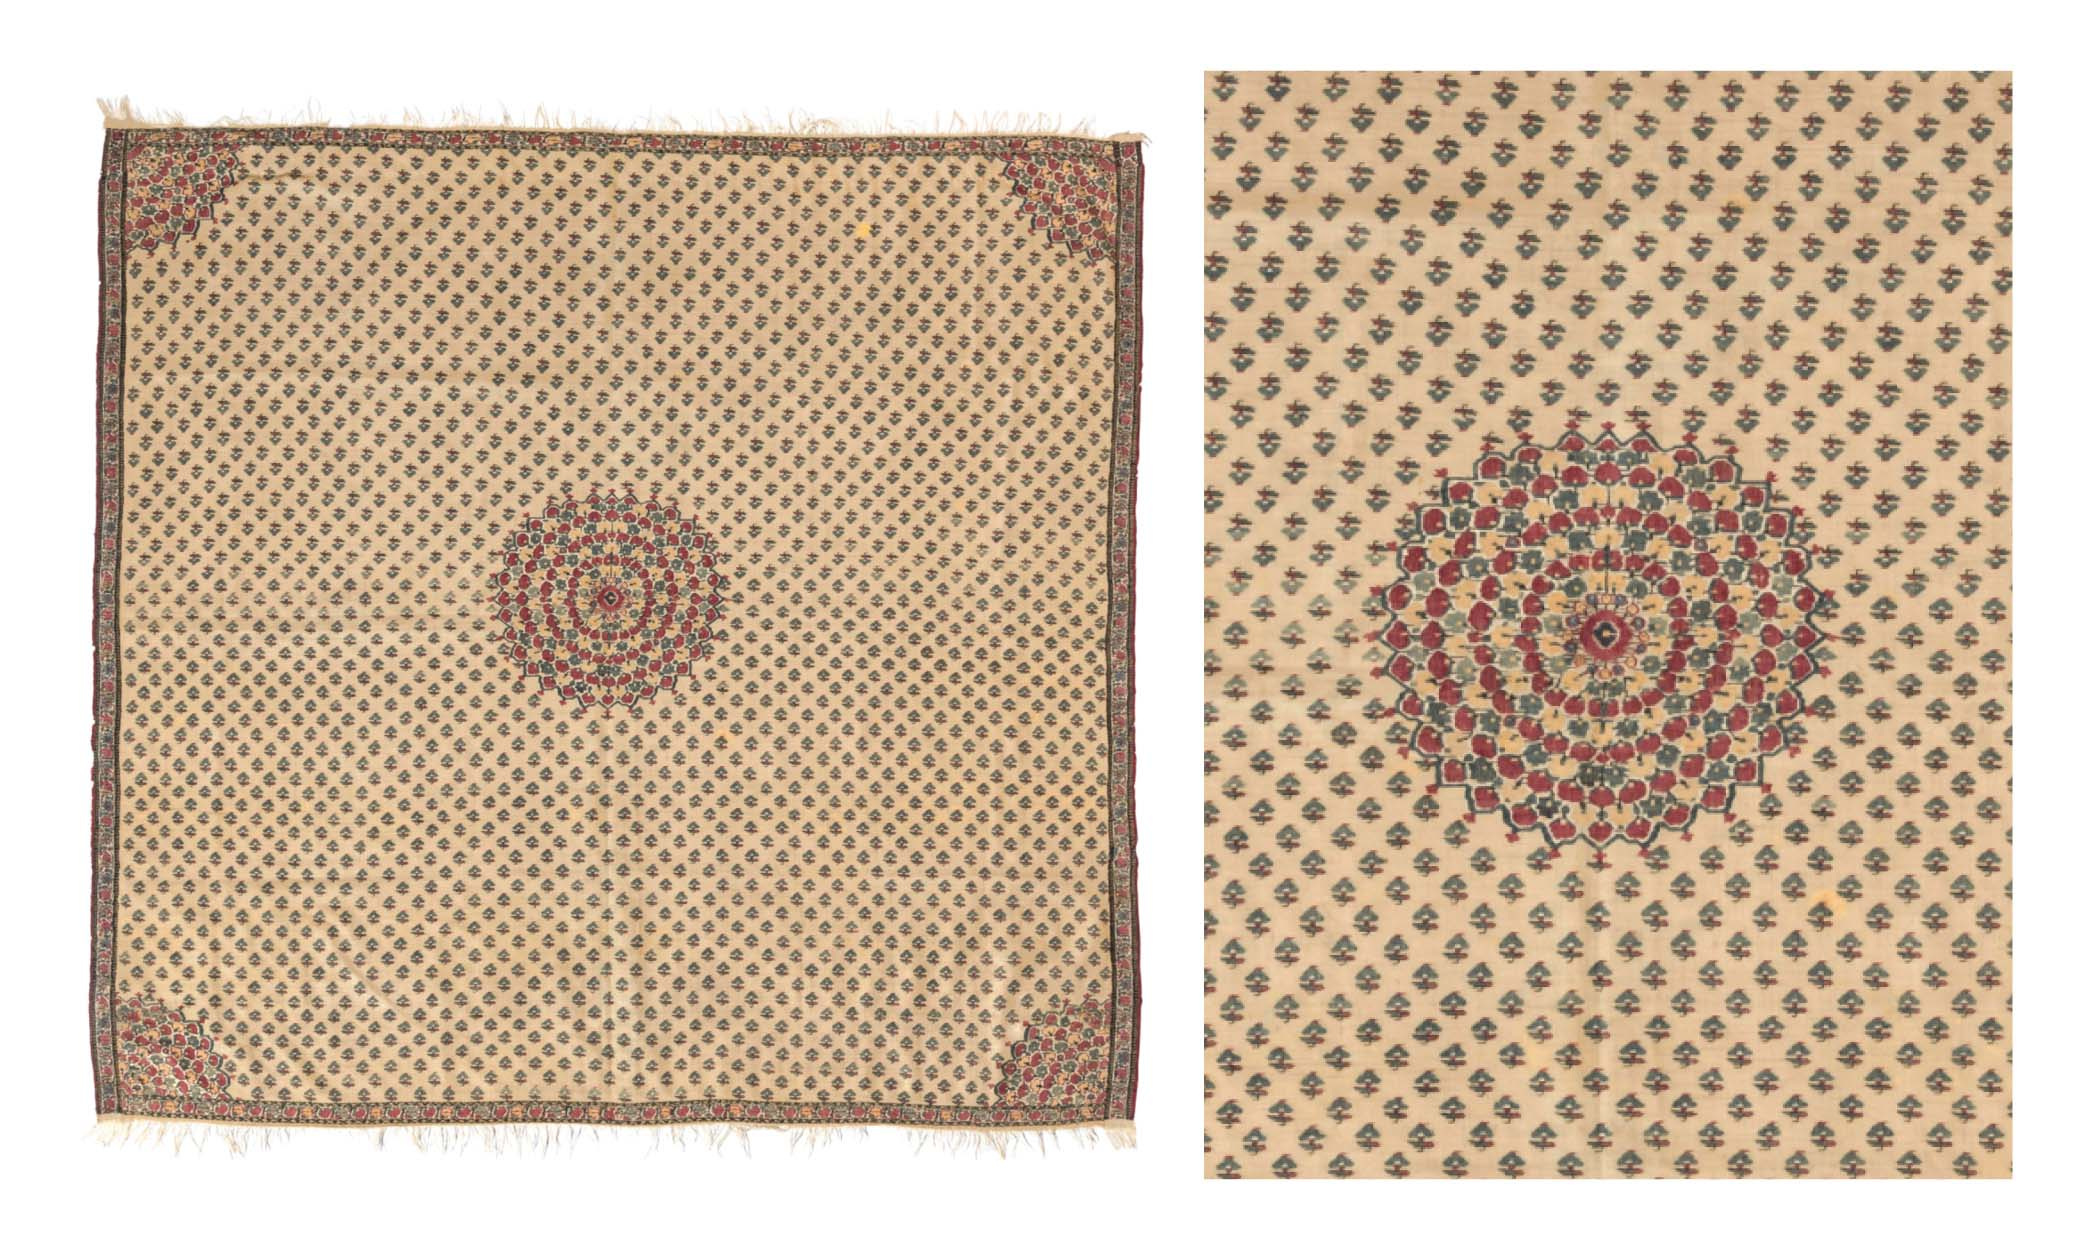 Lot 31: MOON SHAWL (CHANDAR). NORTH INDIA, LATE 18TH CENTURY.